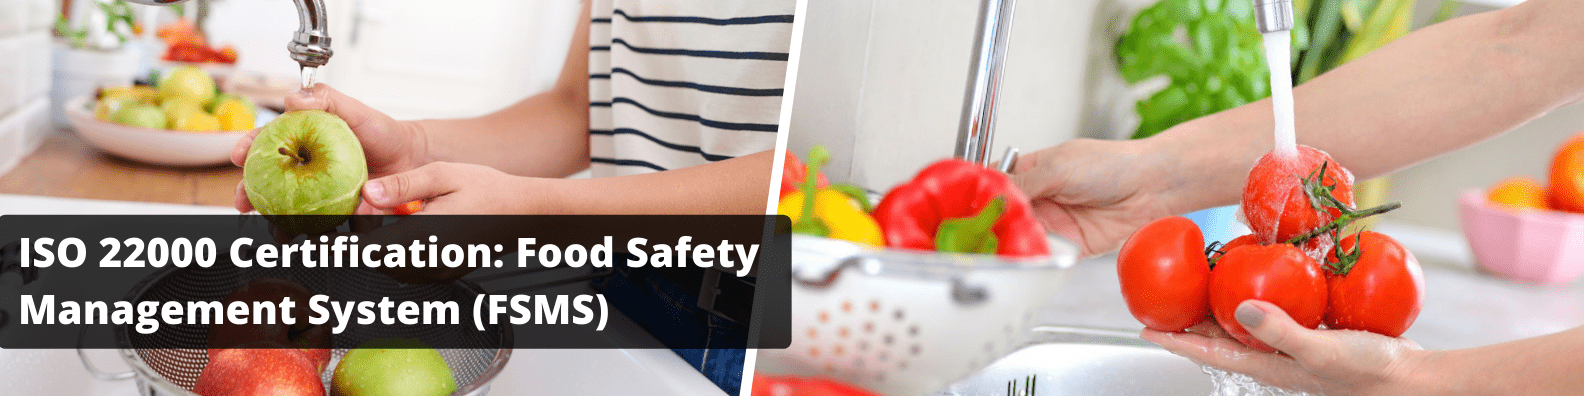 ISO 22000 Certification_ Food Safety Management System (FSMS)